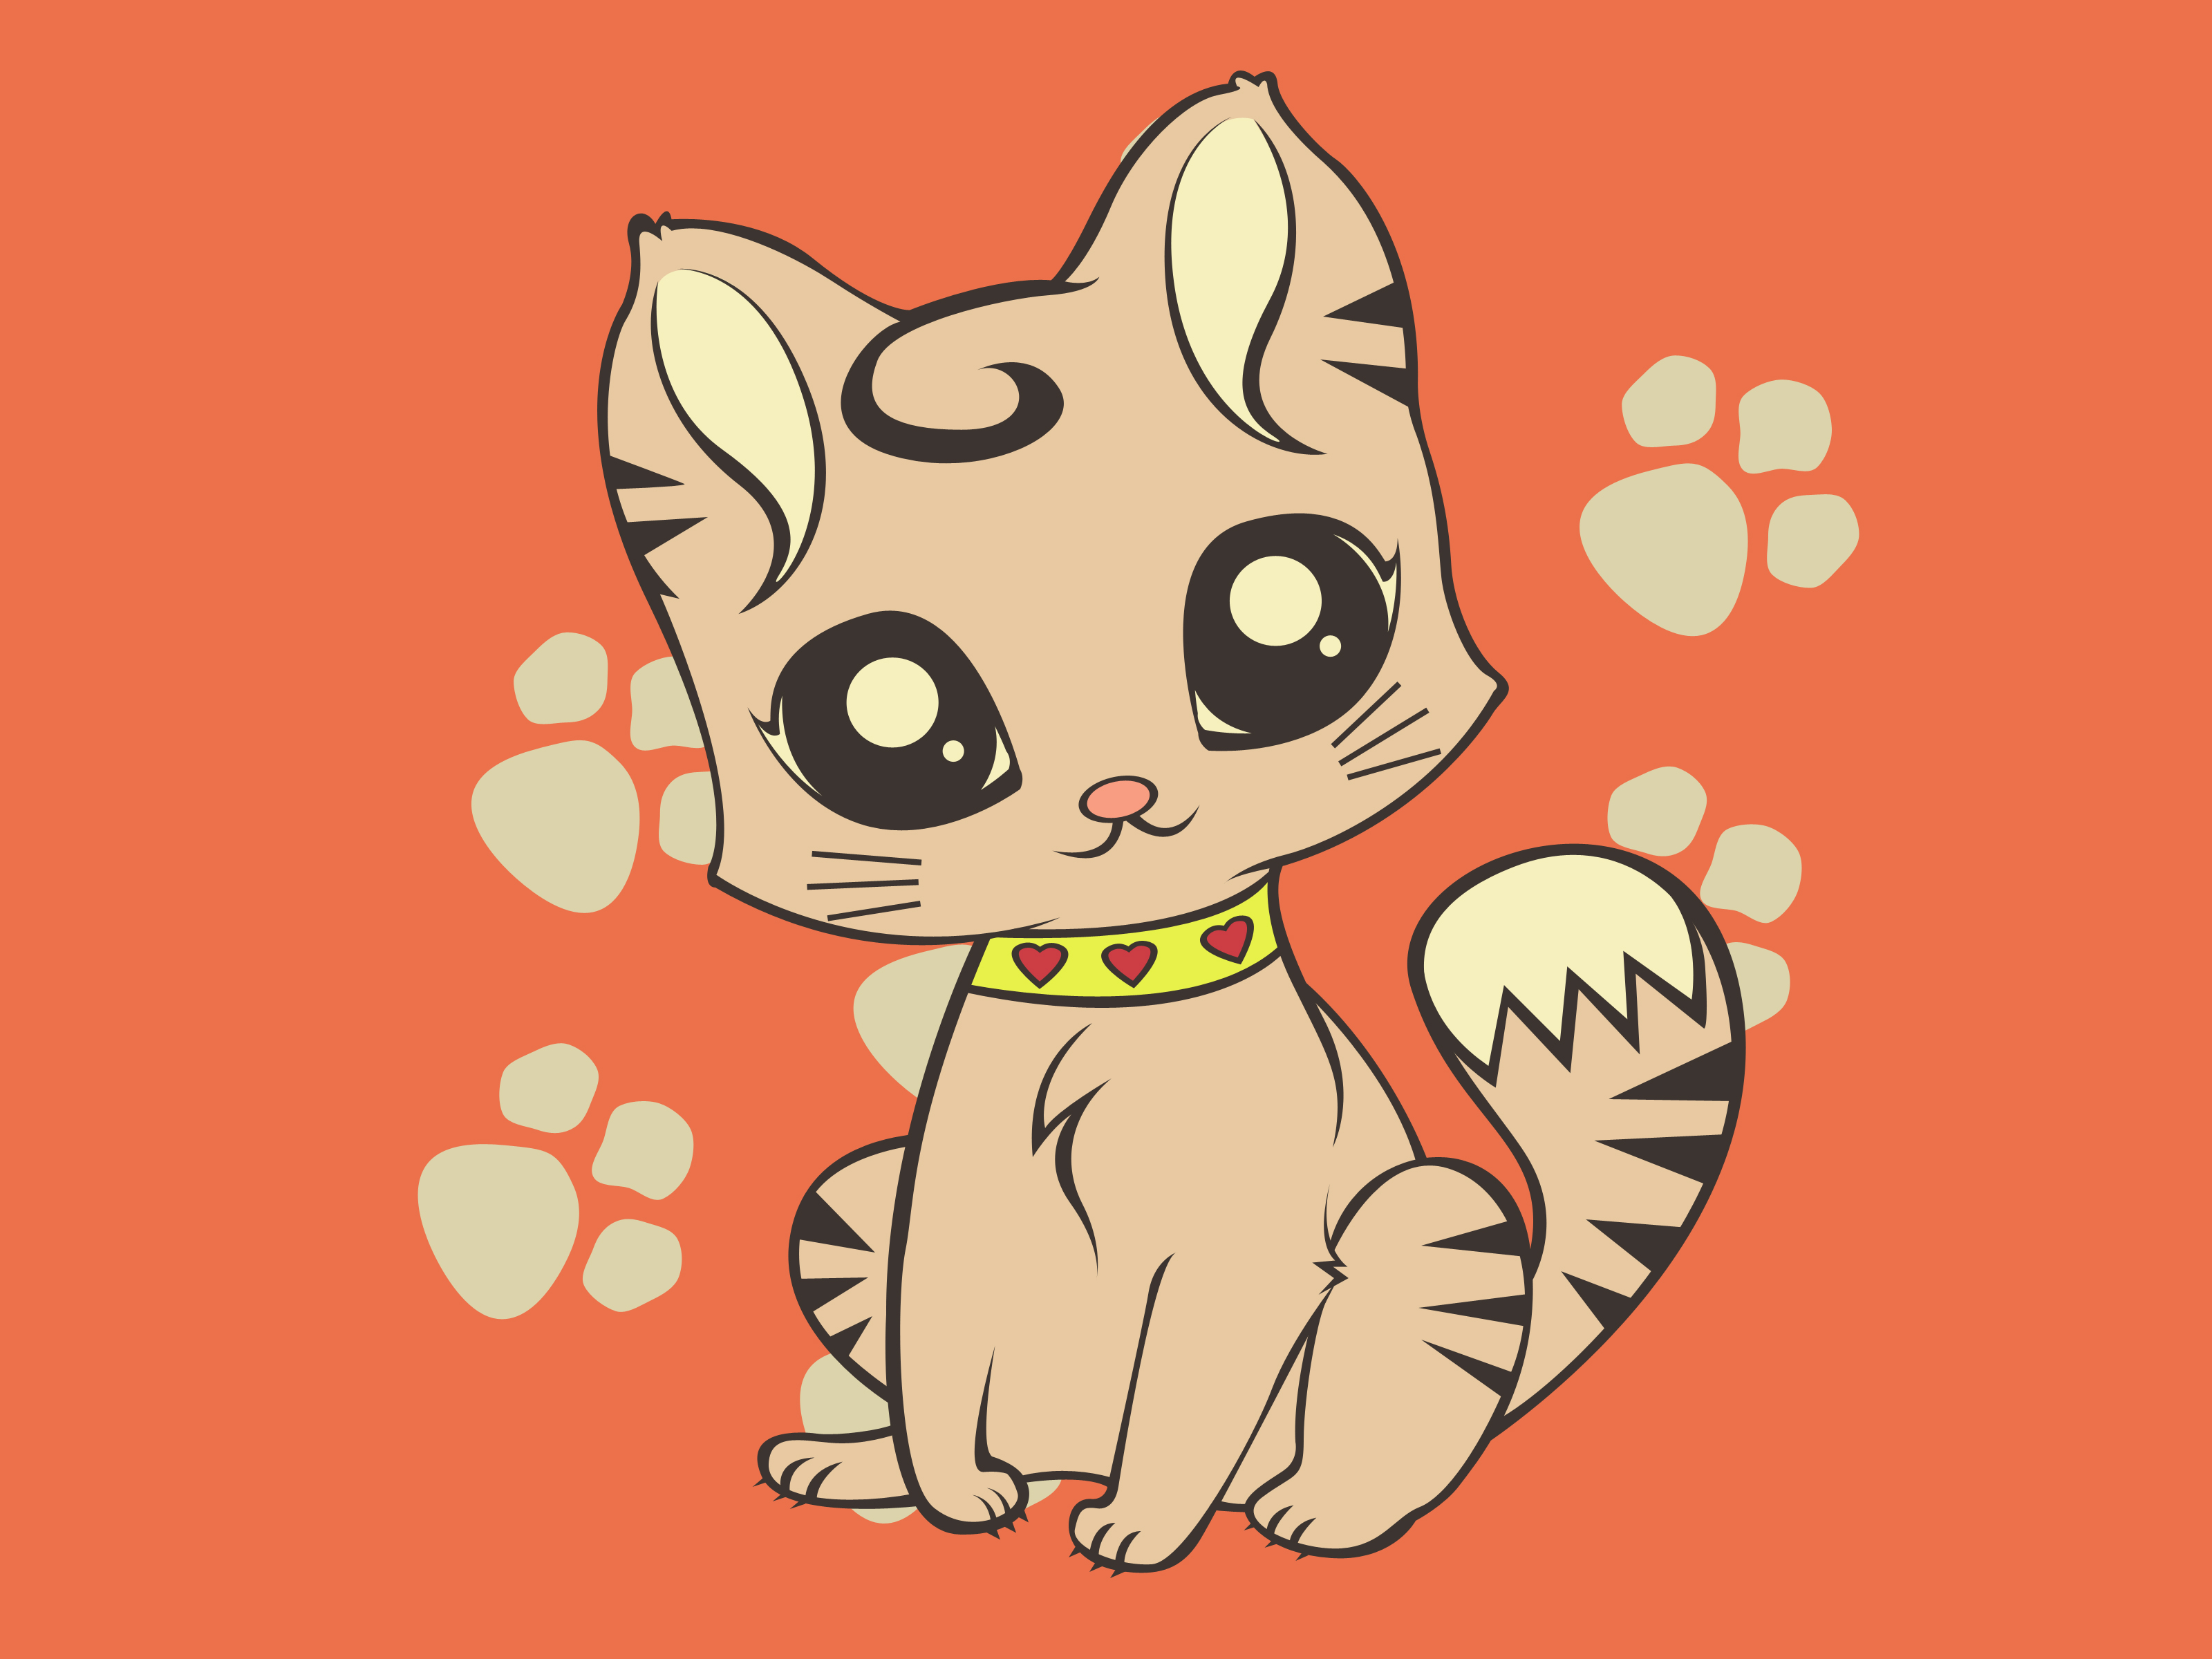 Drawn wallpaper cute animated animal Wallpaper How wikiHow Cat: Cute